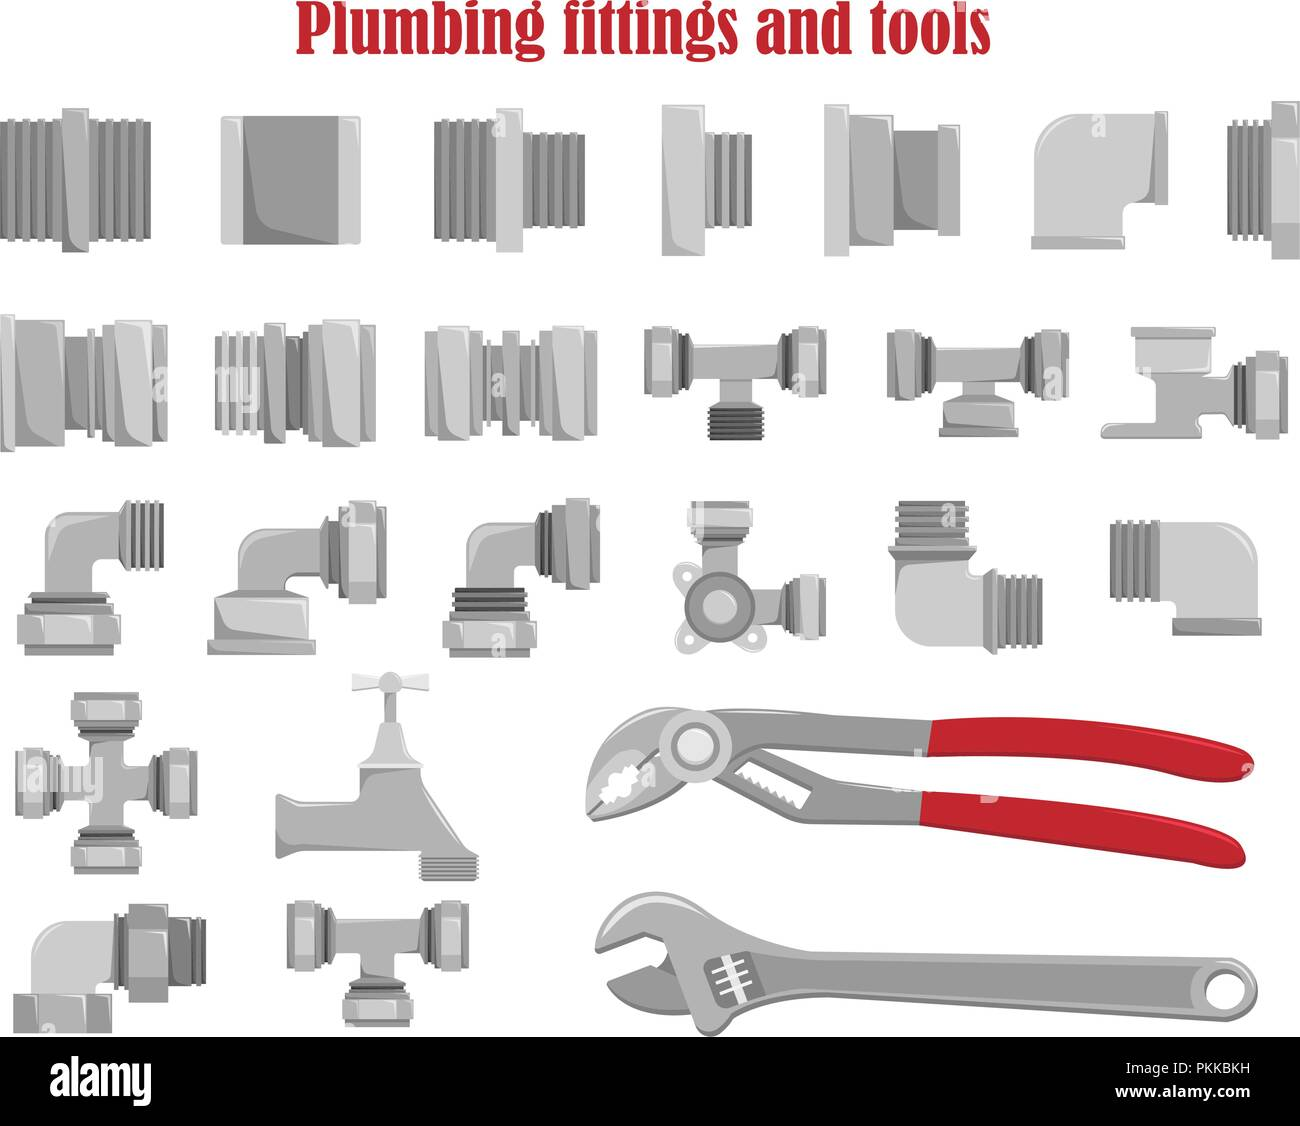 Color vector set of plumbing fittings and tools. - Stock Image